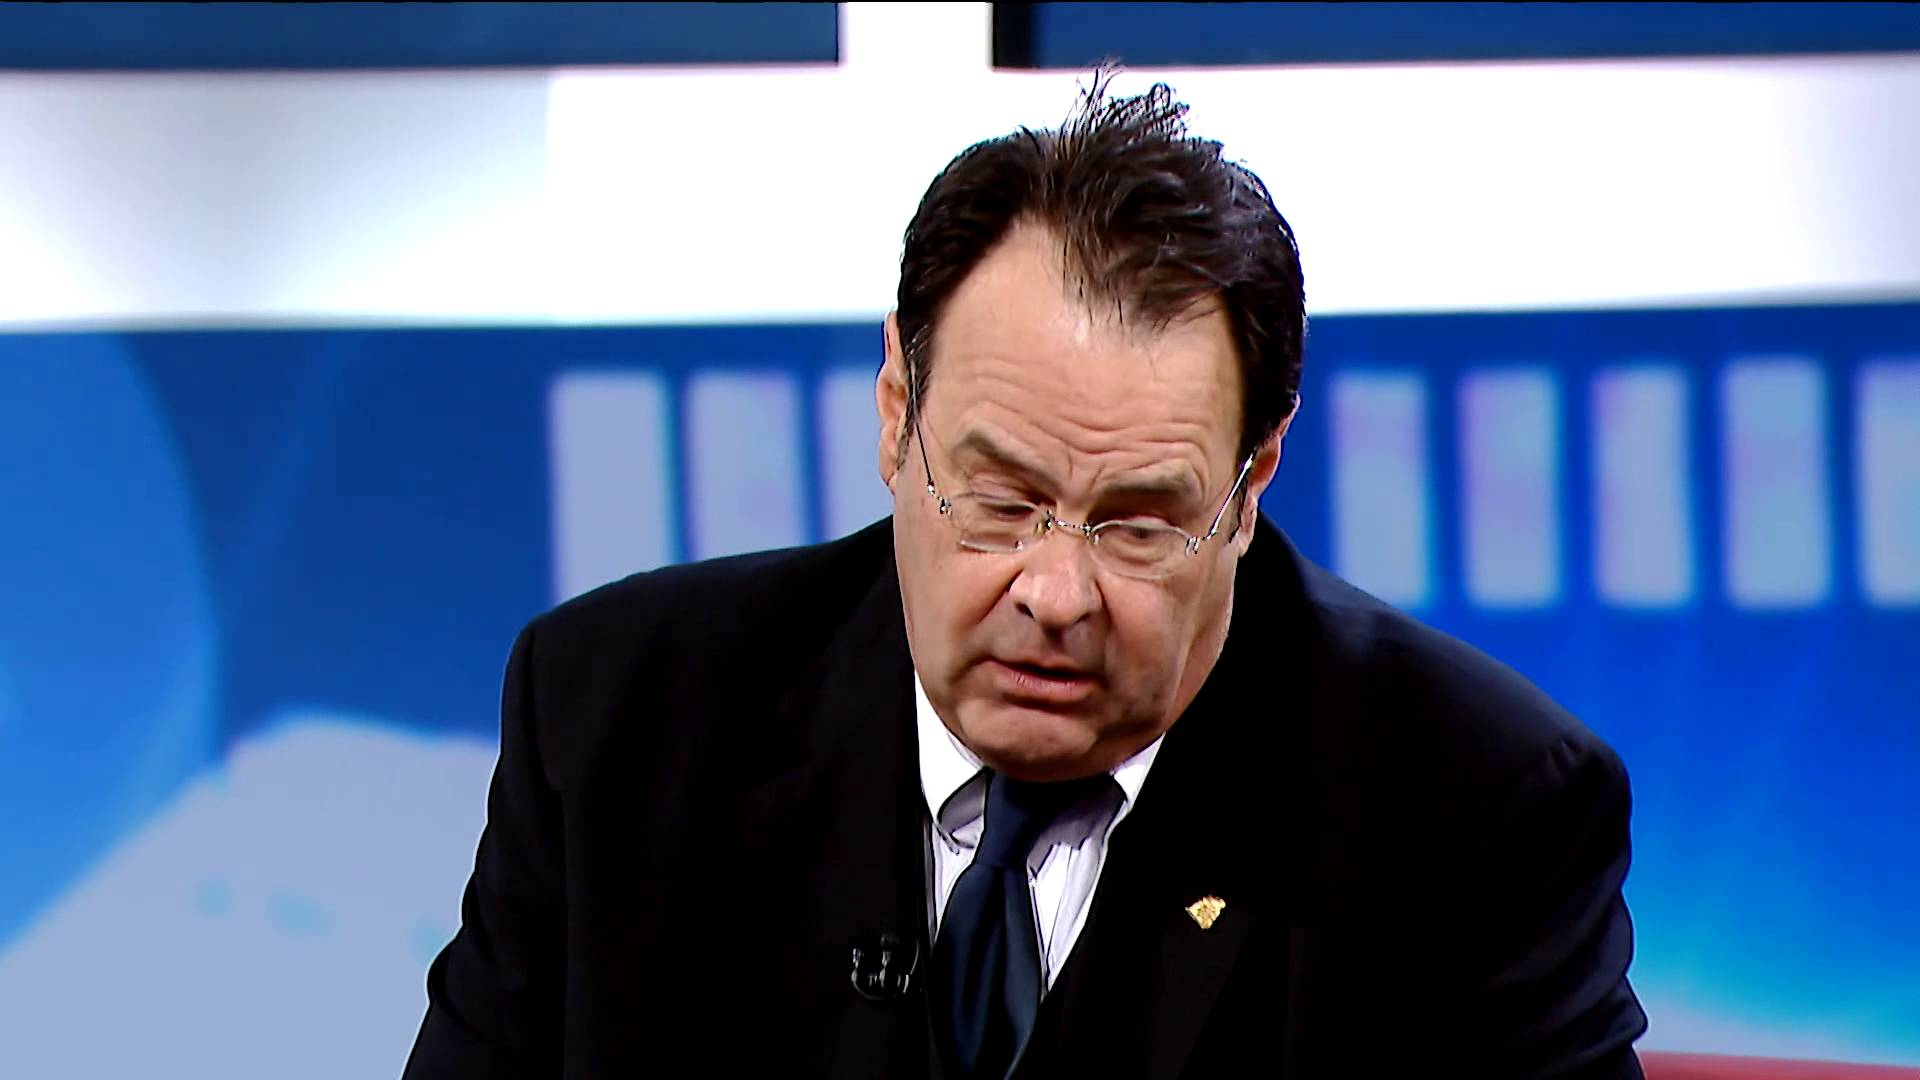 Dan Aykroyd Widescreen for desktop